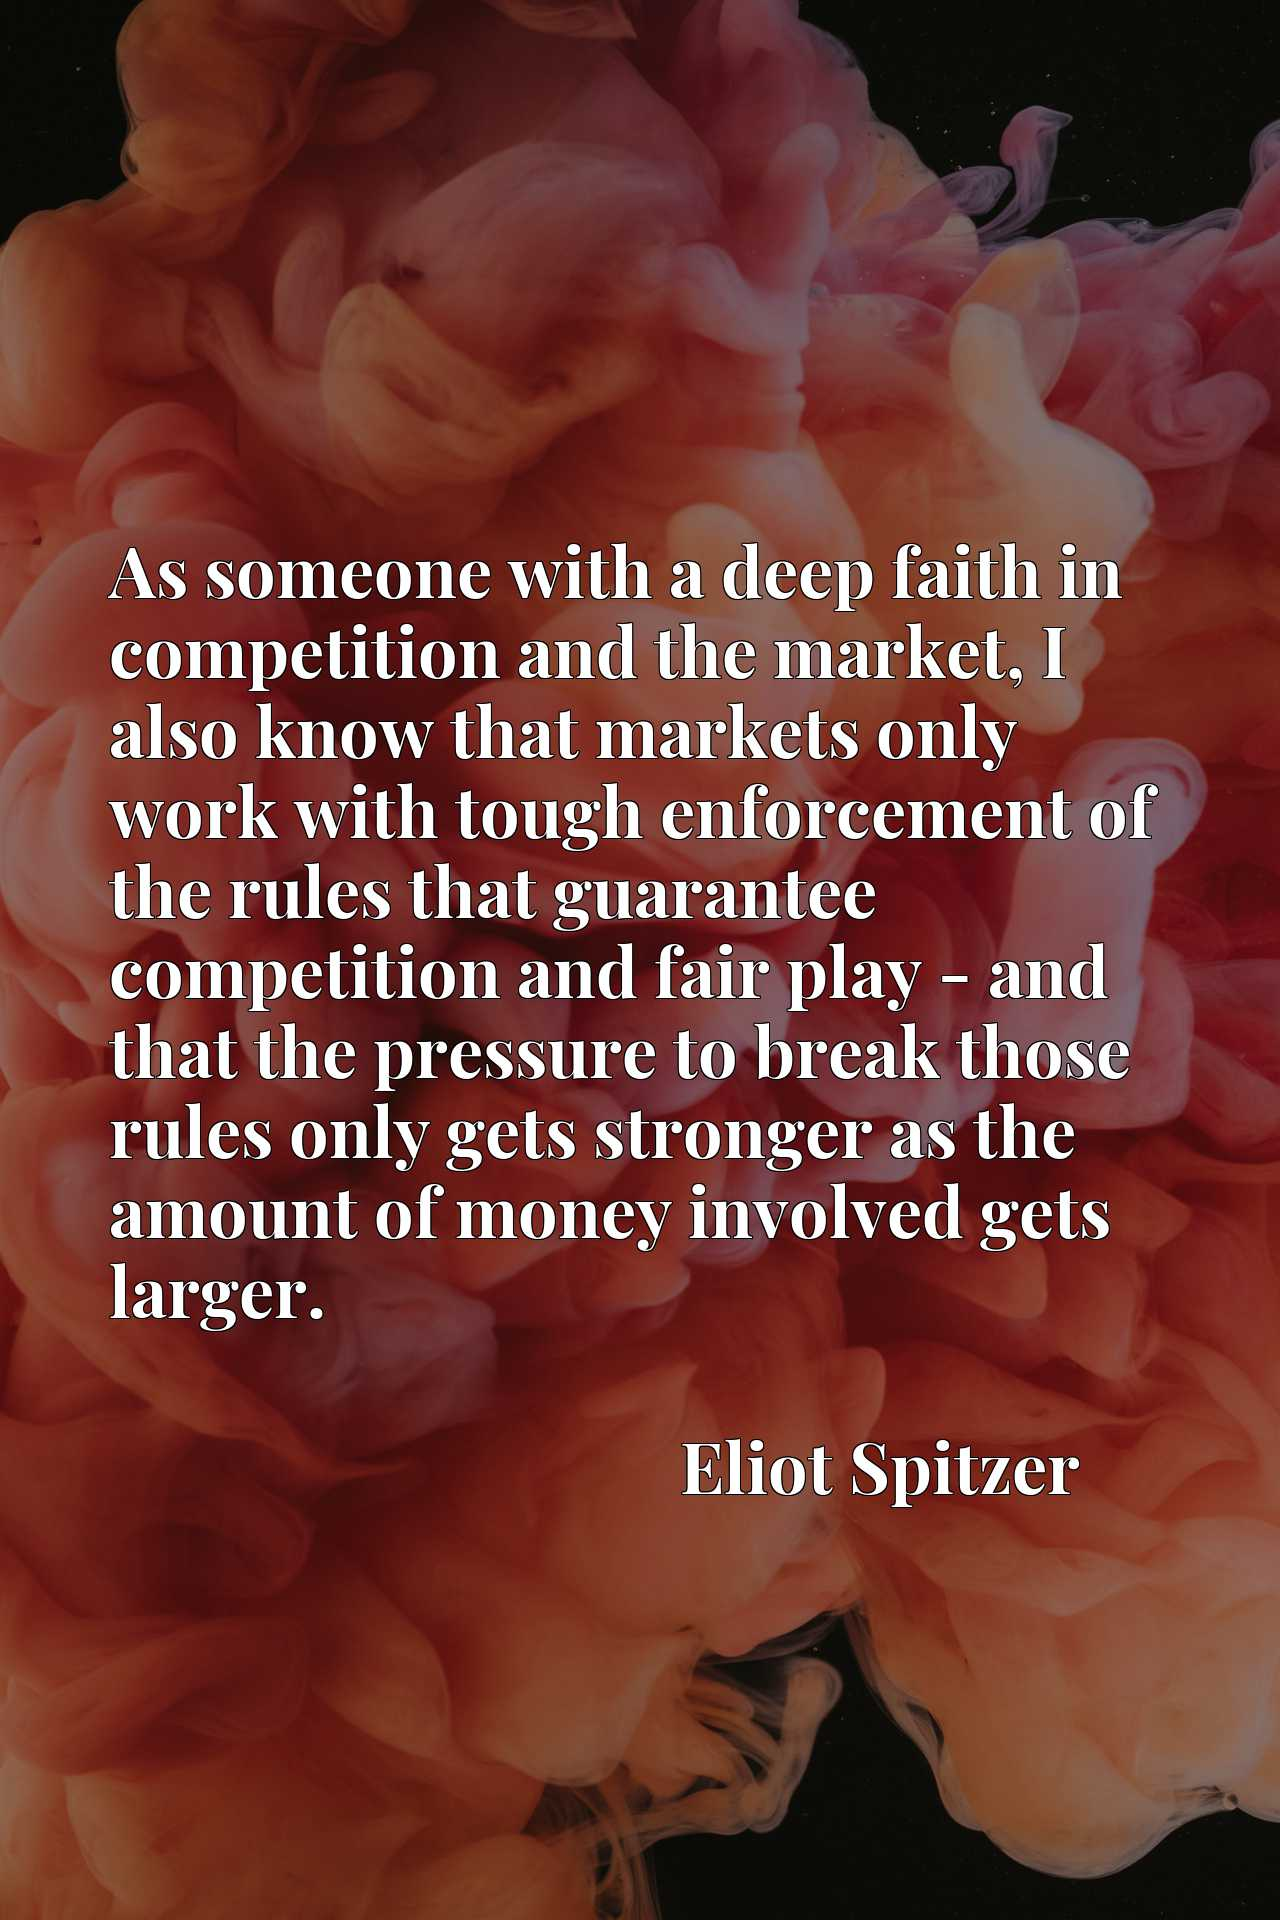 As someone with a deep faith in competition and the market, I also know that markets only work with tough enforcement of the rules that guarantee competition and fair play - and that the pressure to break those rules only gets stronger as the amount of money involved gets larger.